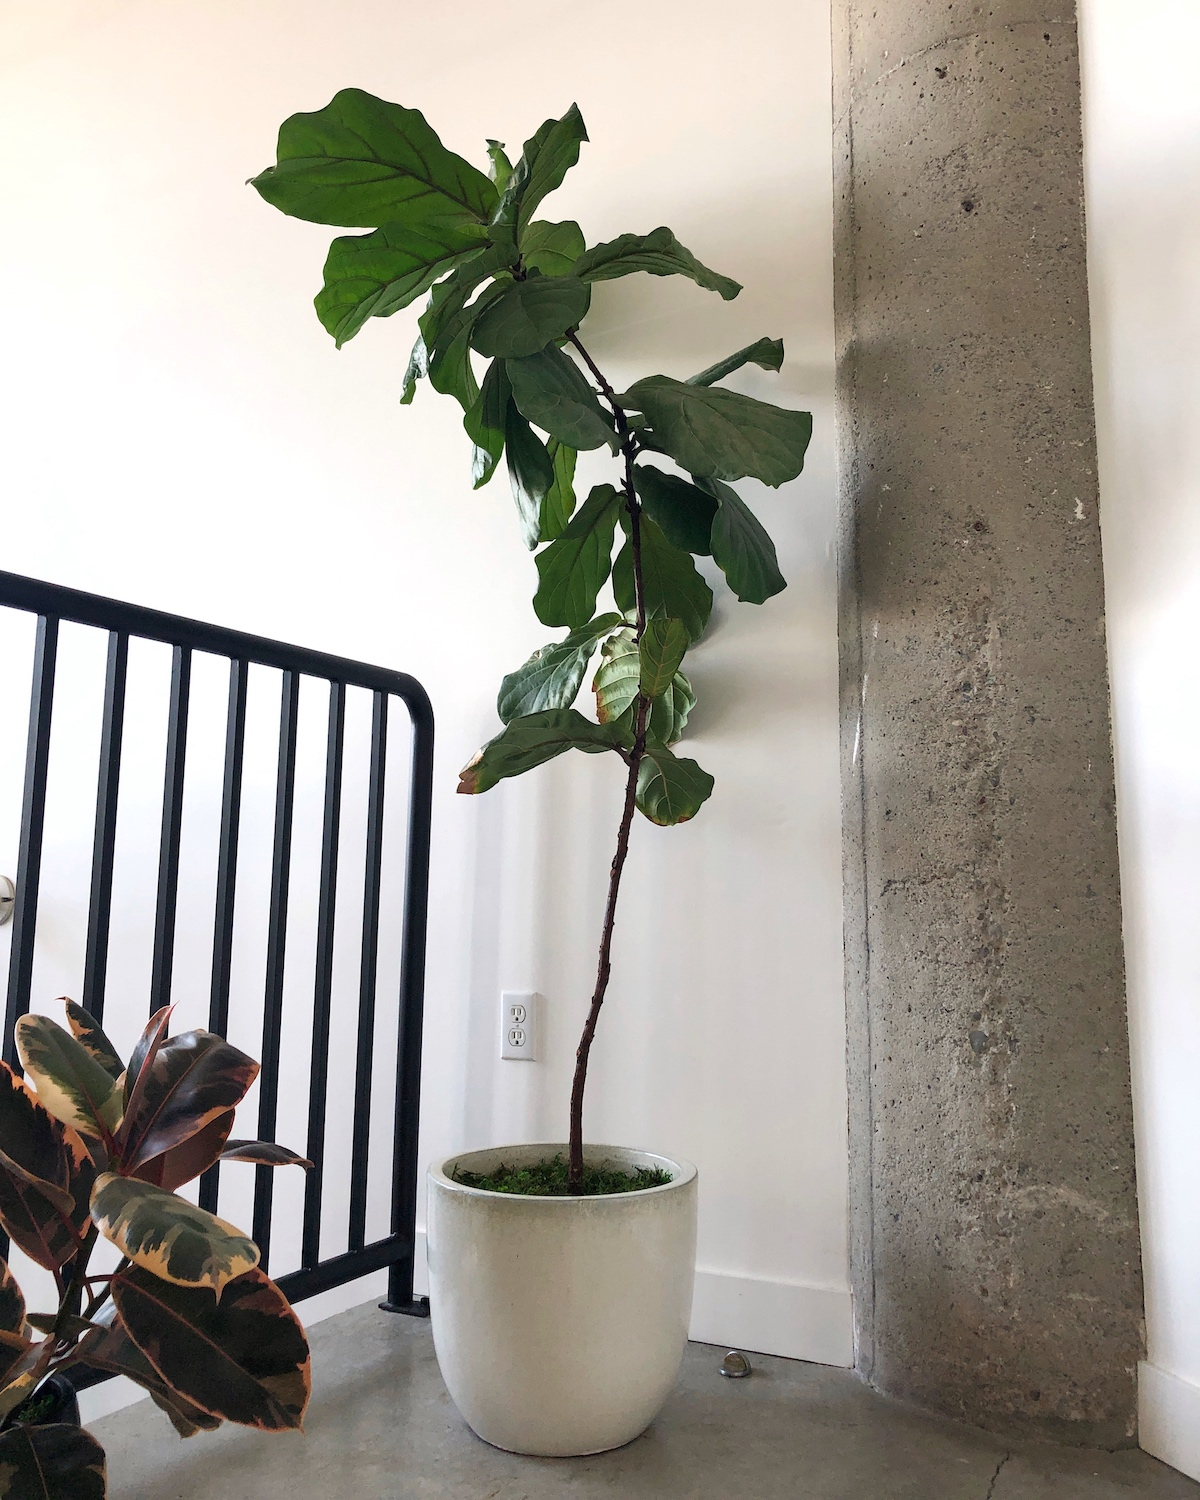 Fiddle Leaf Fig Tree growing towards its light source.